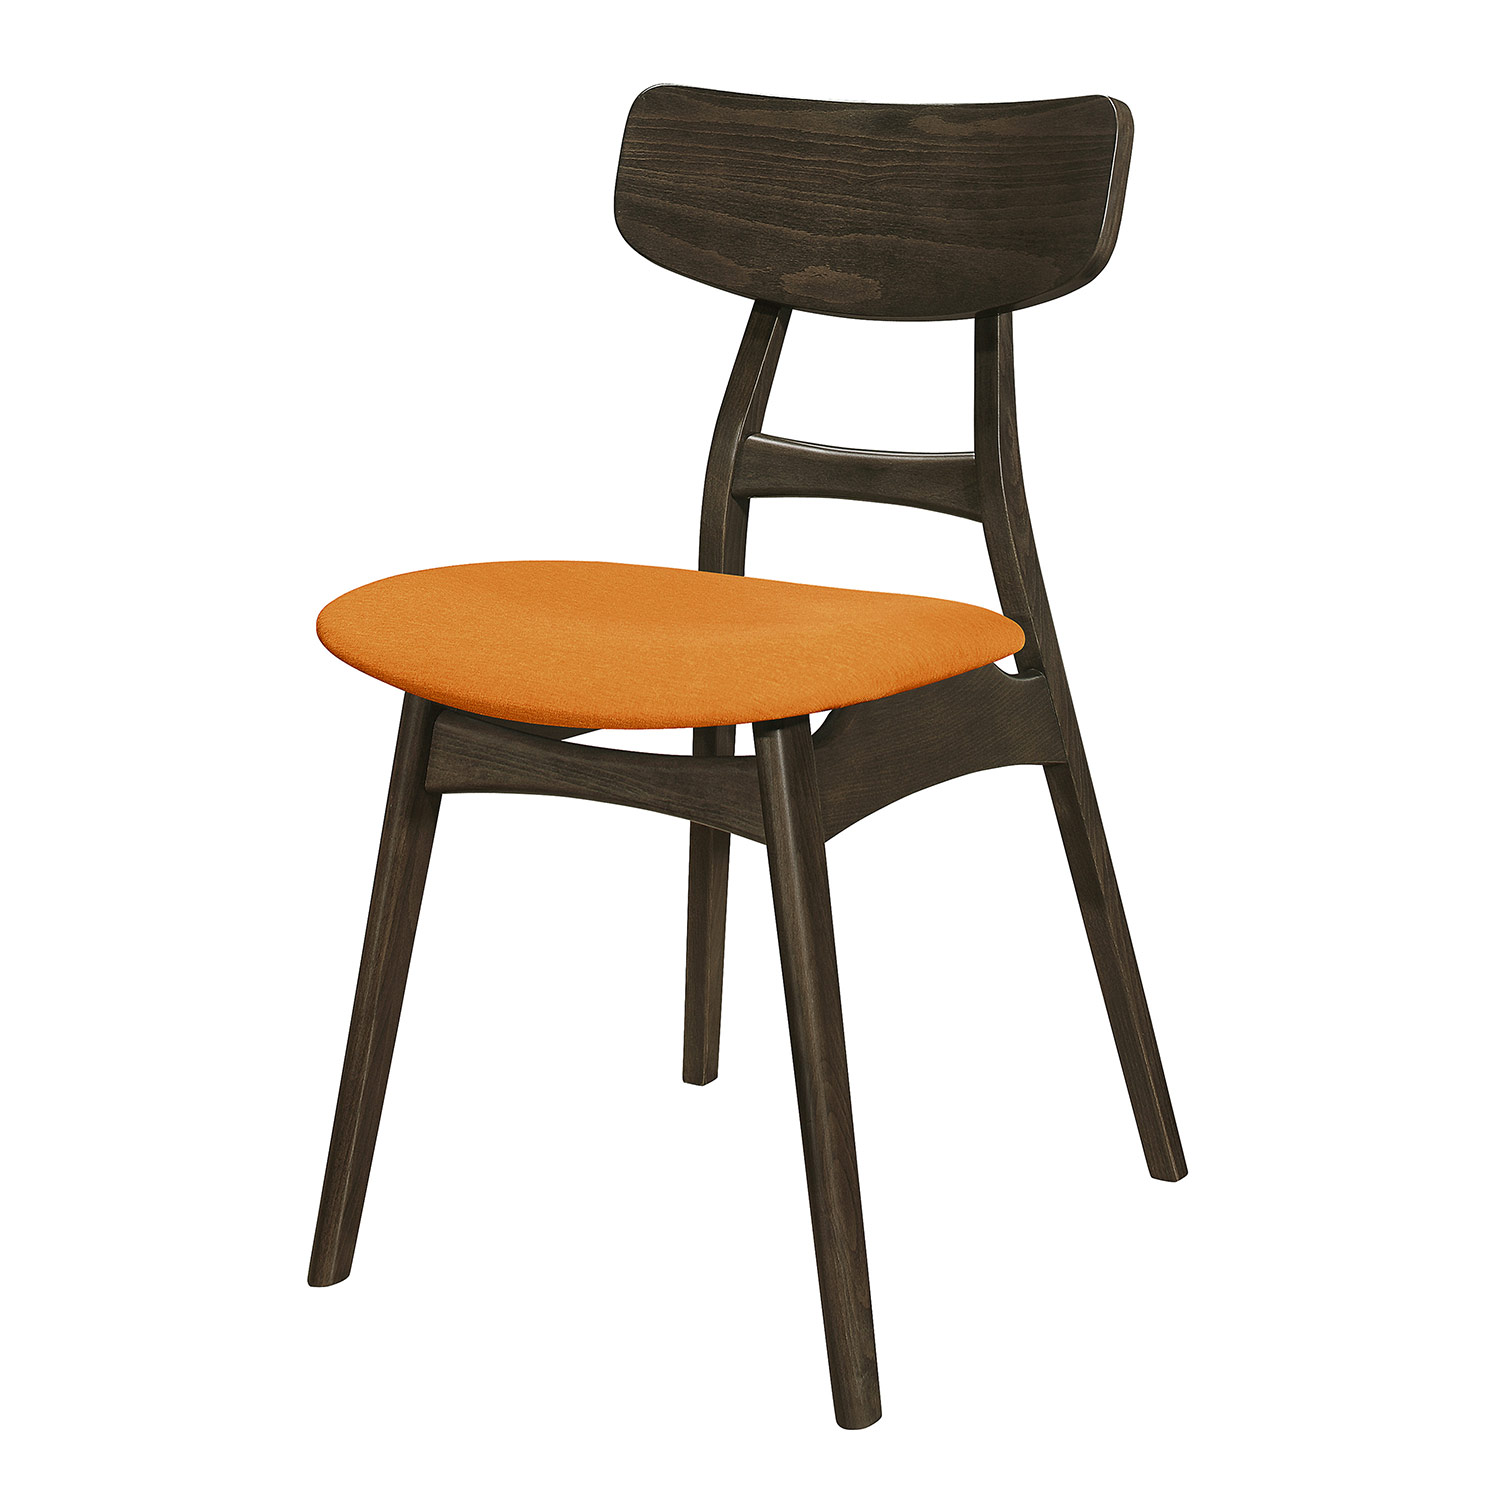 Homelegance Tannar Side Chair - Orange